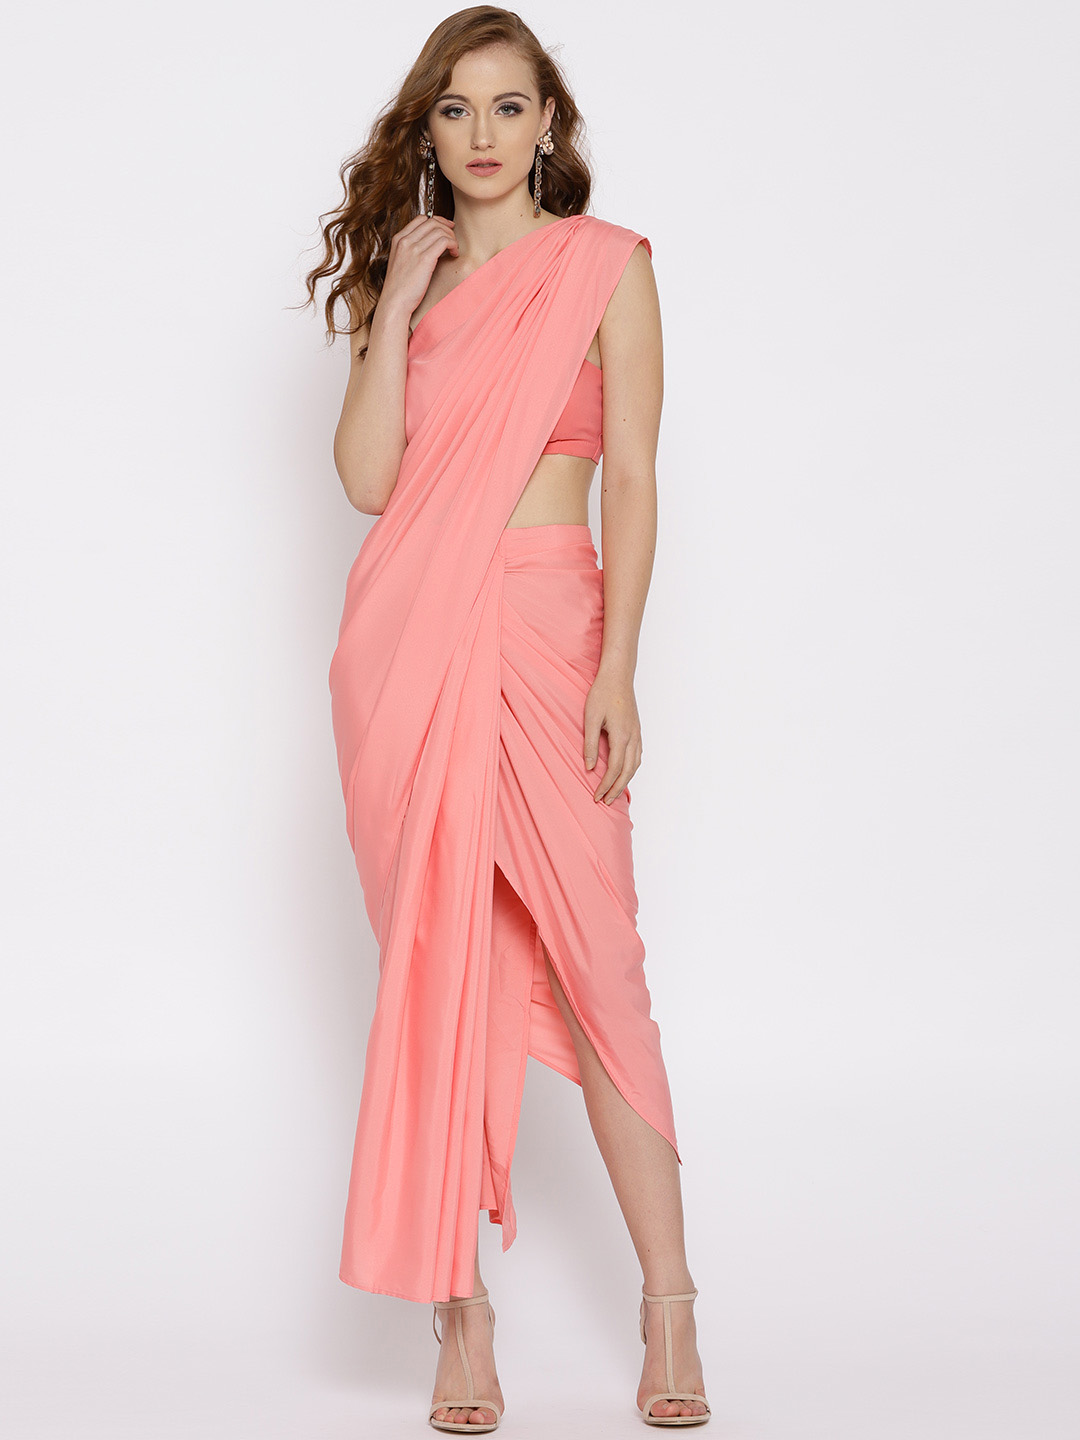 17-sarees-for-farewell-Pink-Solid-Ready-to-wear-Saree